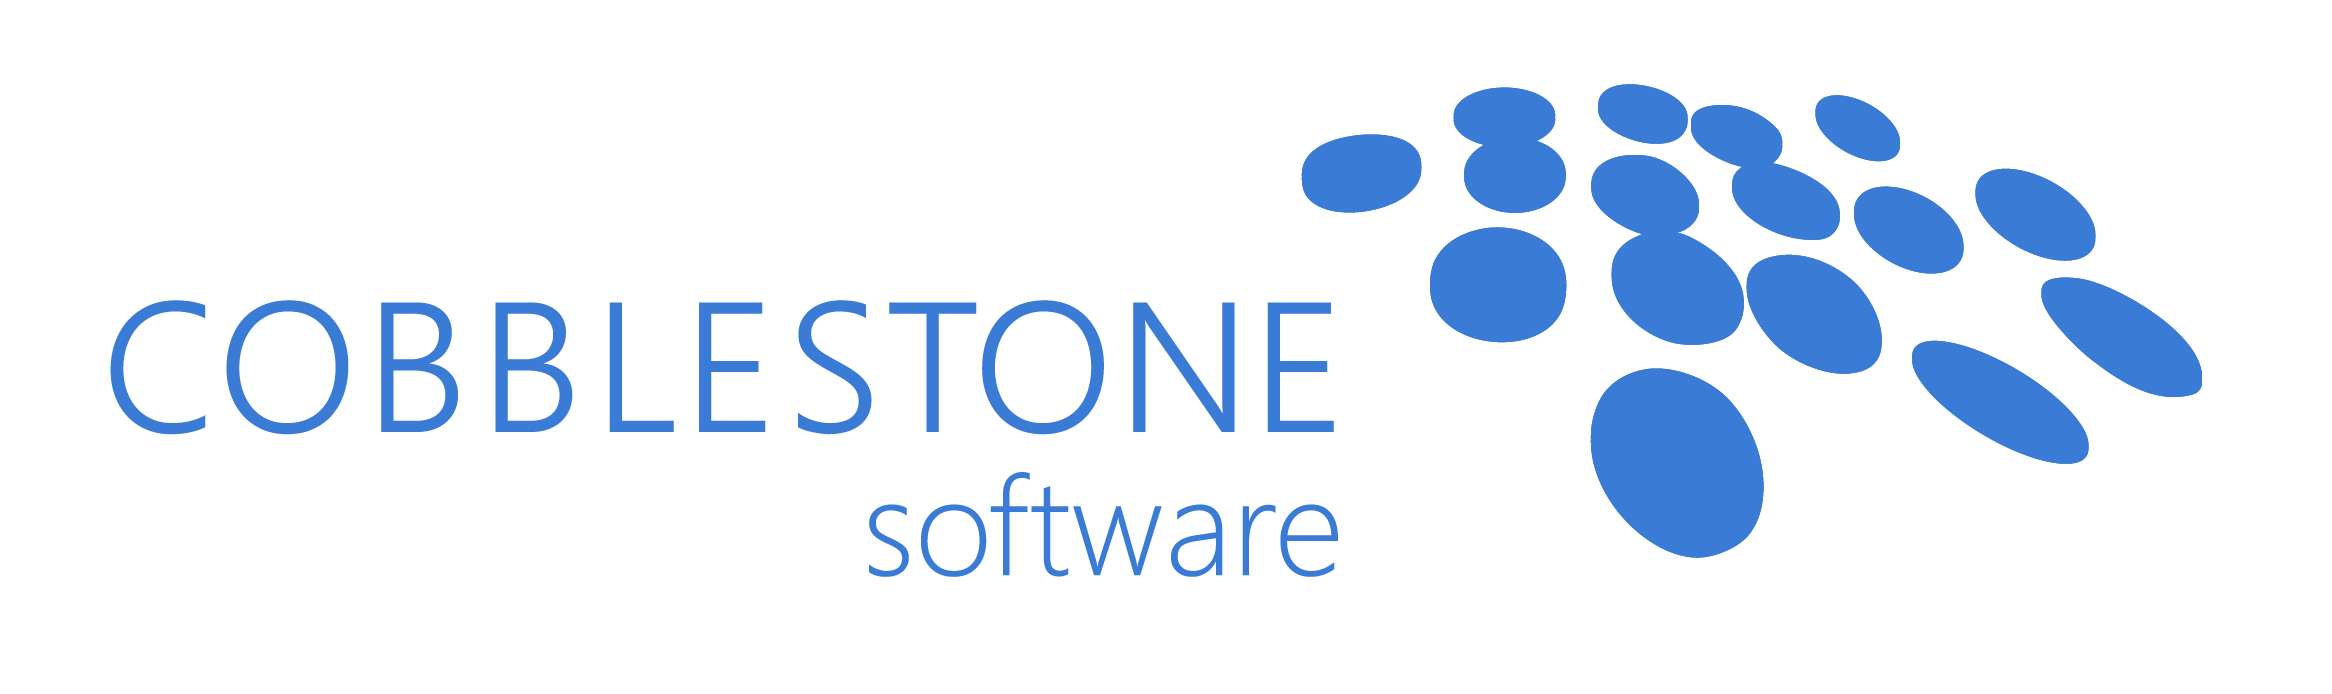 CobbleStone Software Logo